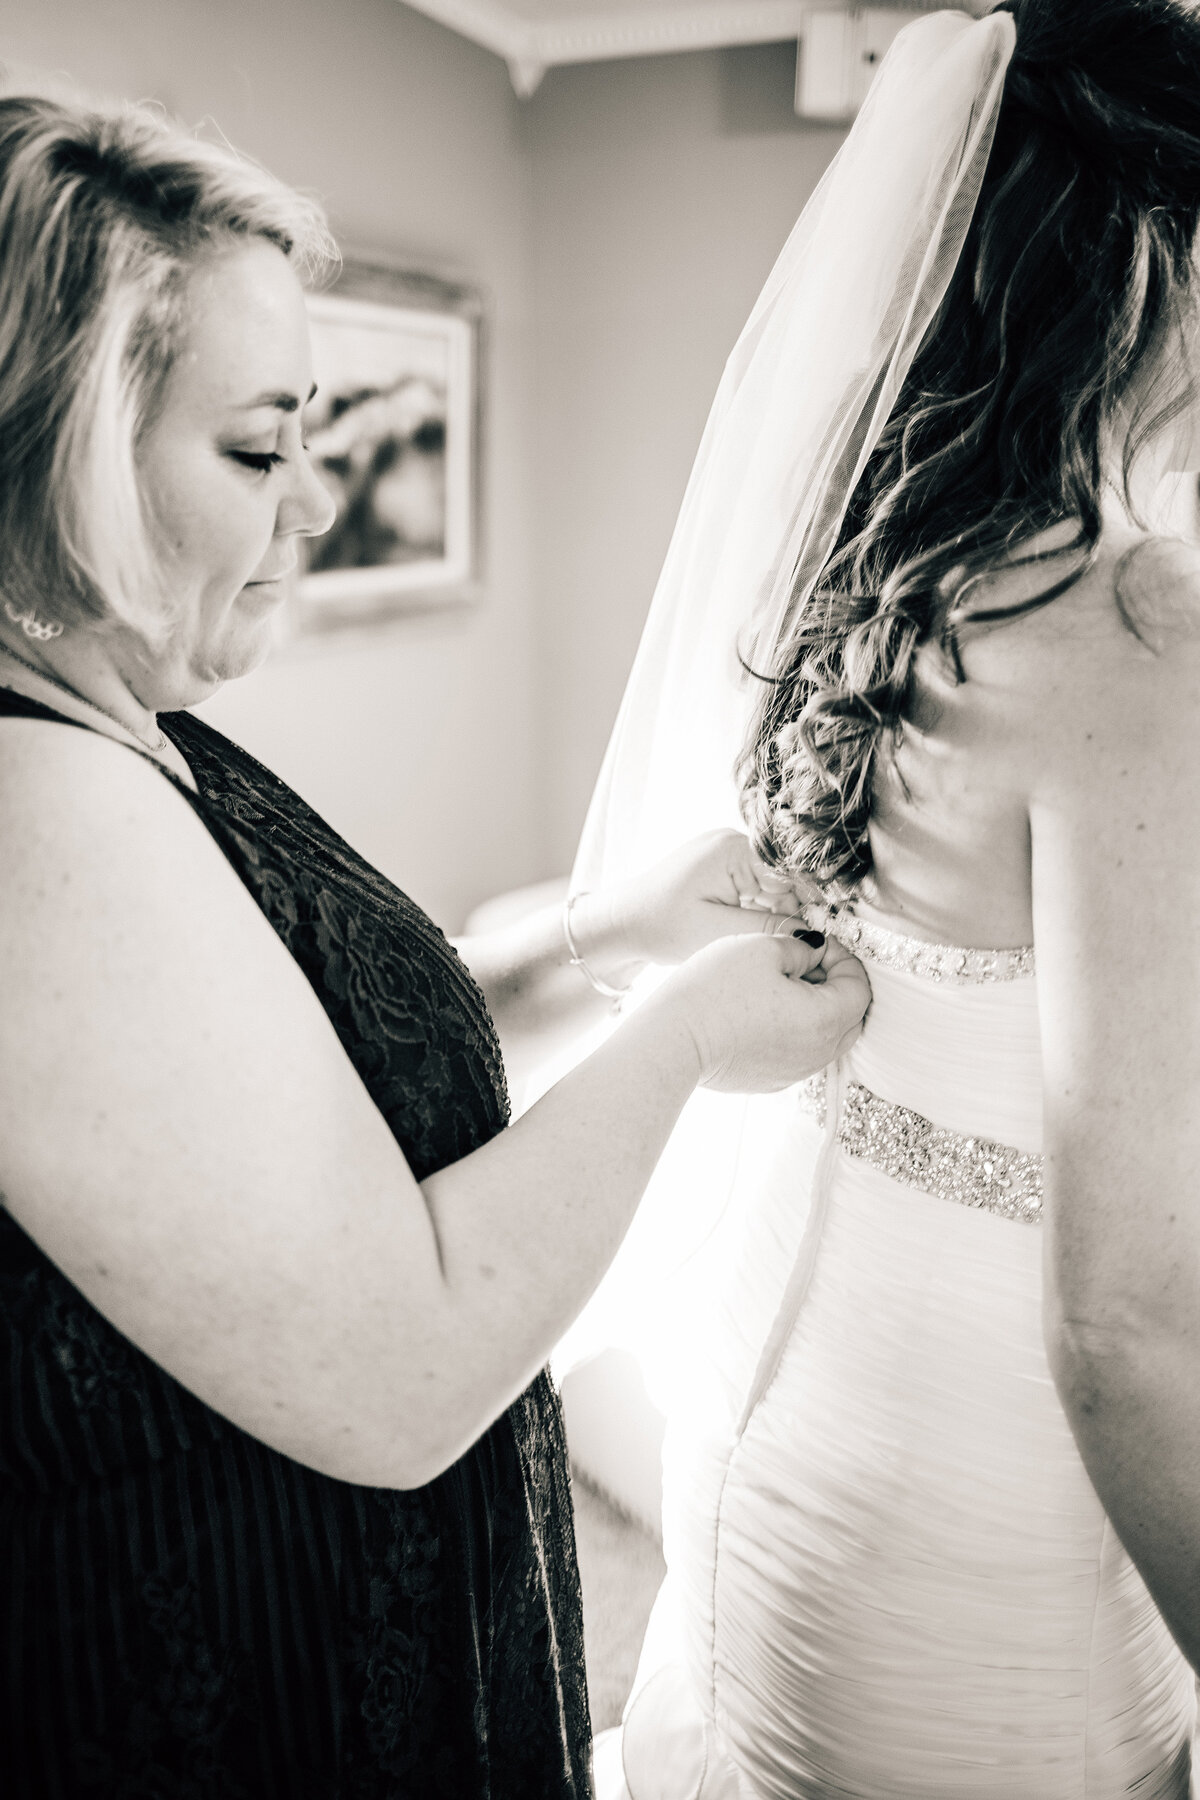 Kimberly_Hoyle_Photography_Marrero_Millikens_Reef_Wedding-8